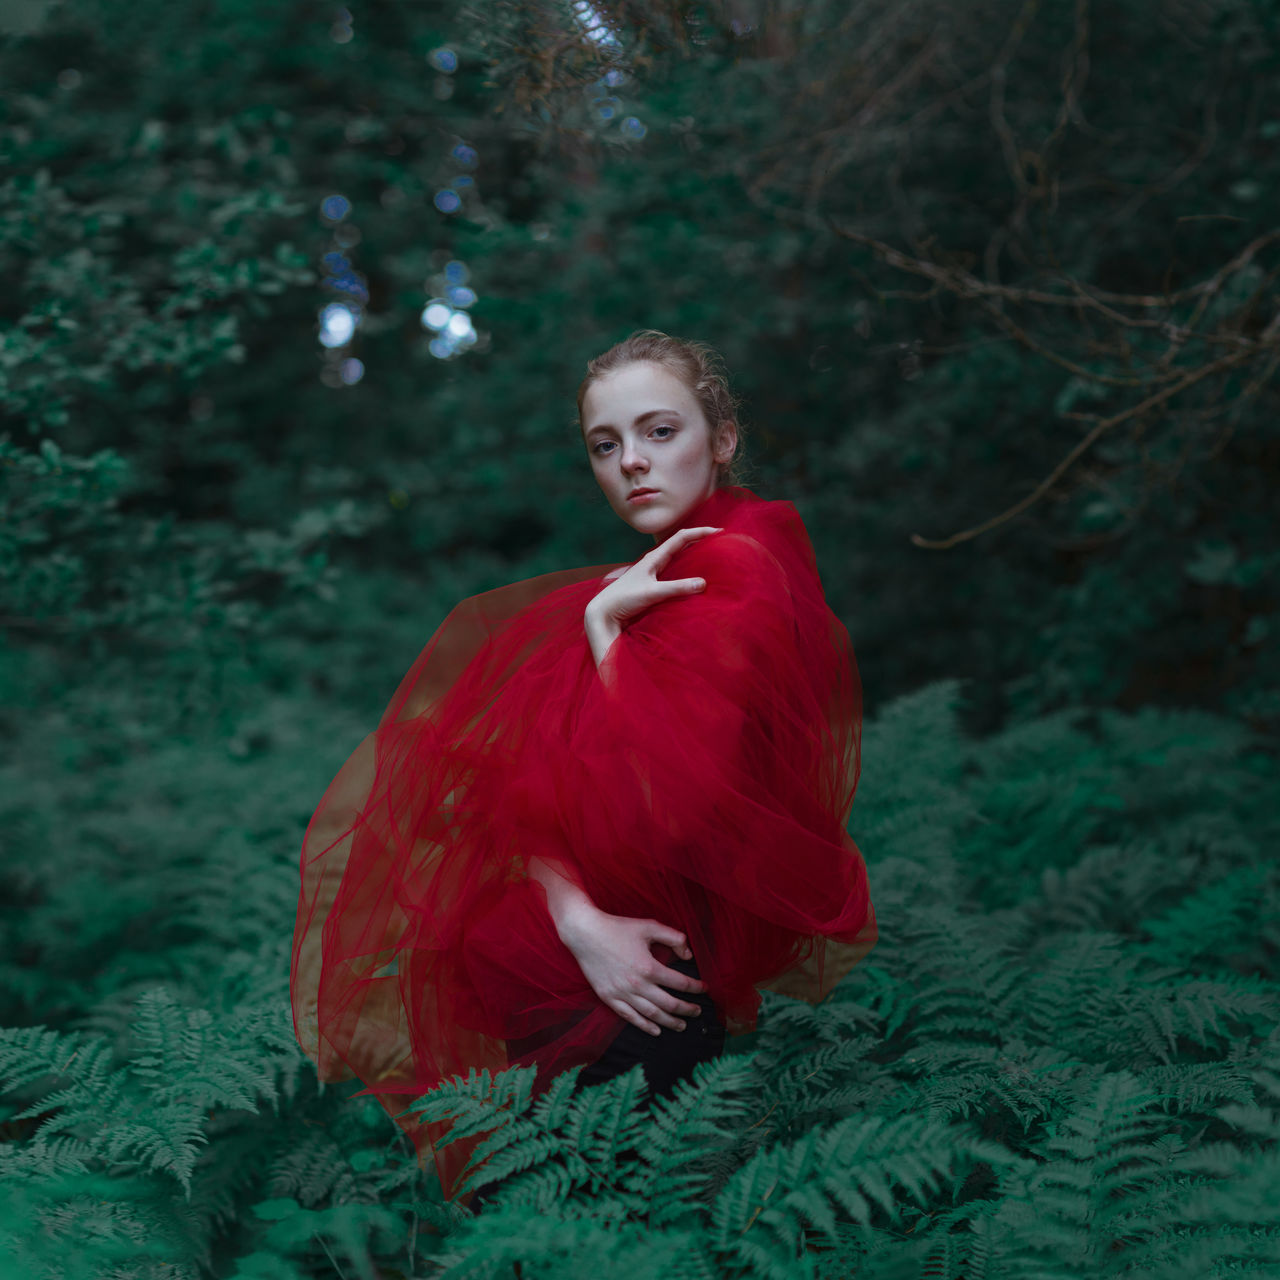 Join me on Instagram https://www.instagram.com/eglelaurinavice/ Beautiful Woman Day Forest Front View Girl Lifestyles Looking At Camera Natural Light Portrait One Person Outdoors People Portrait Portrait Of A Woman Real People Red Tree Woman Woman Who Inspire You Young Adult Young Women